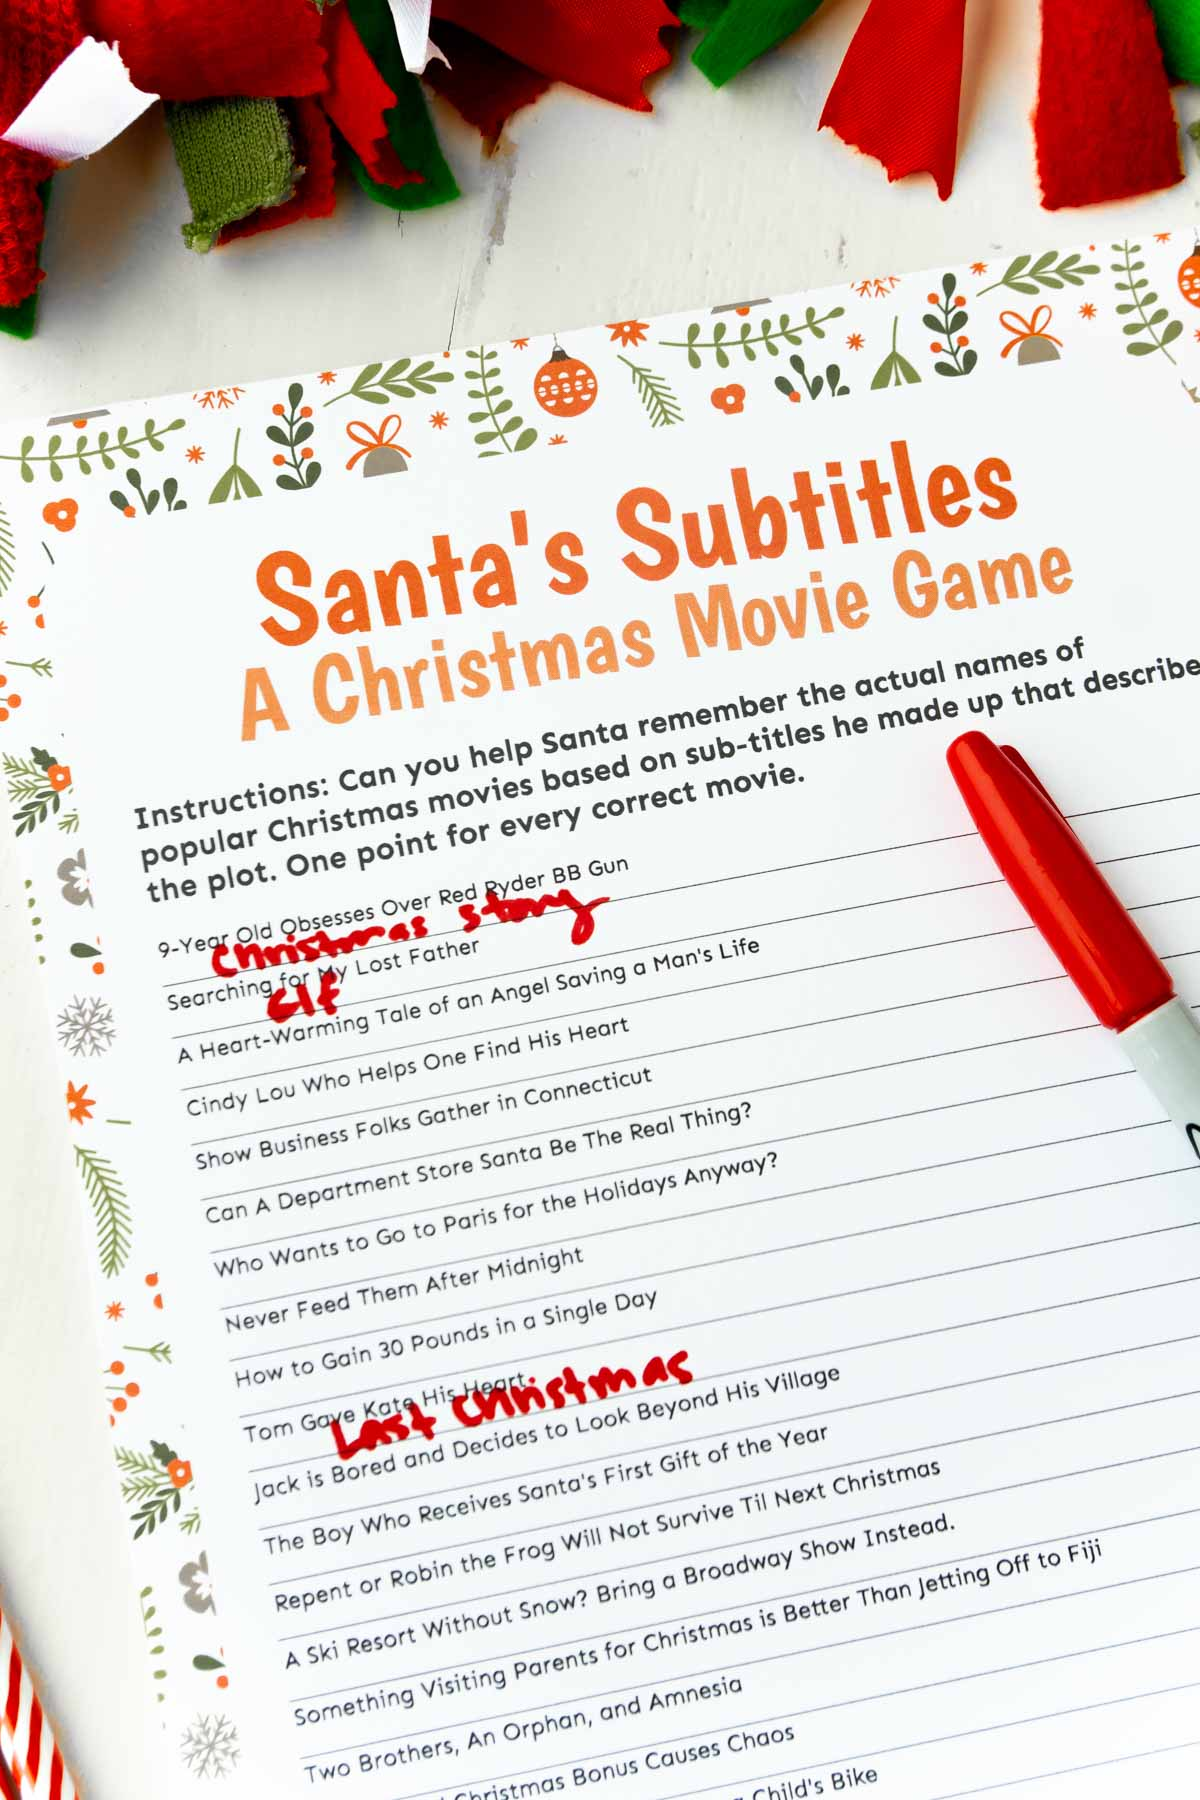 Christmas movie trivia game with a red pen and a garland